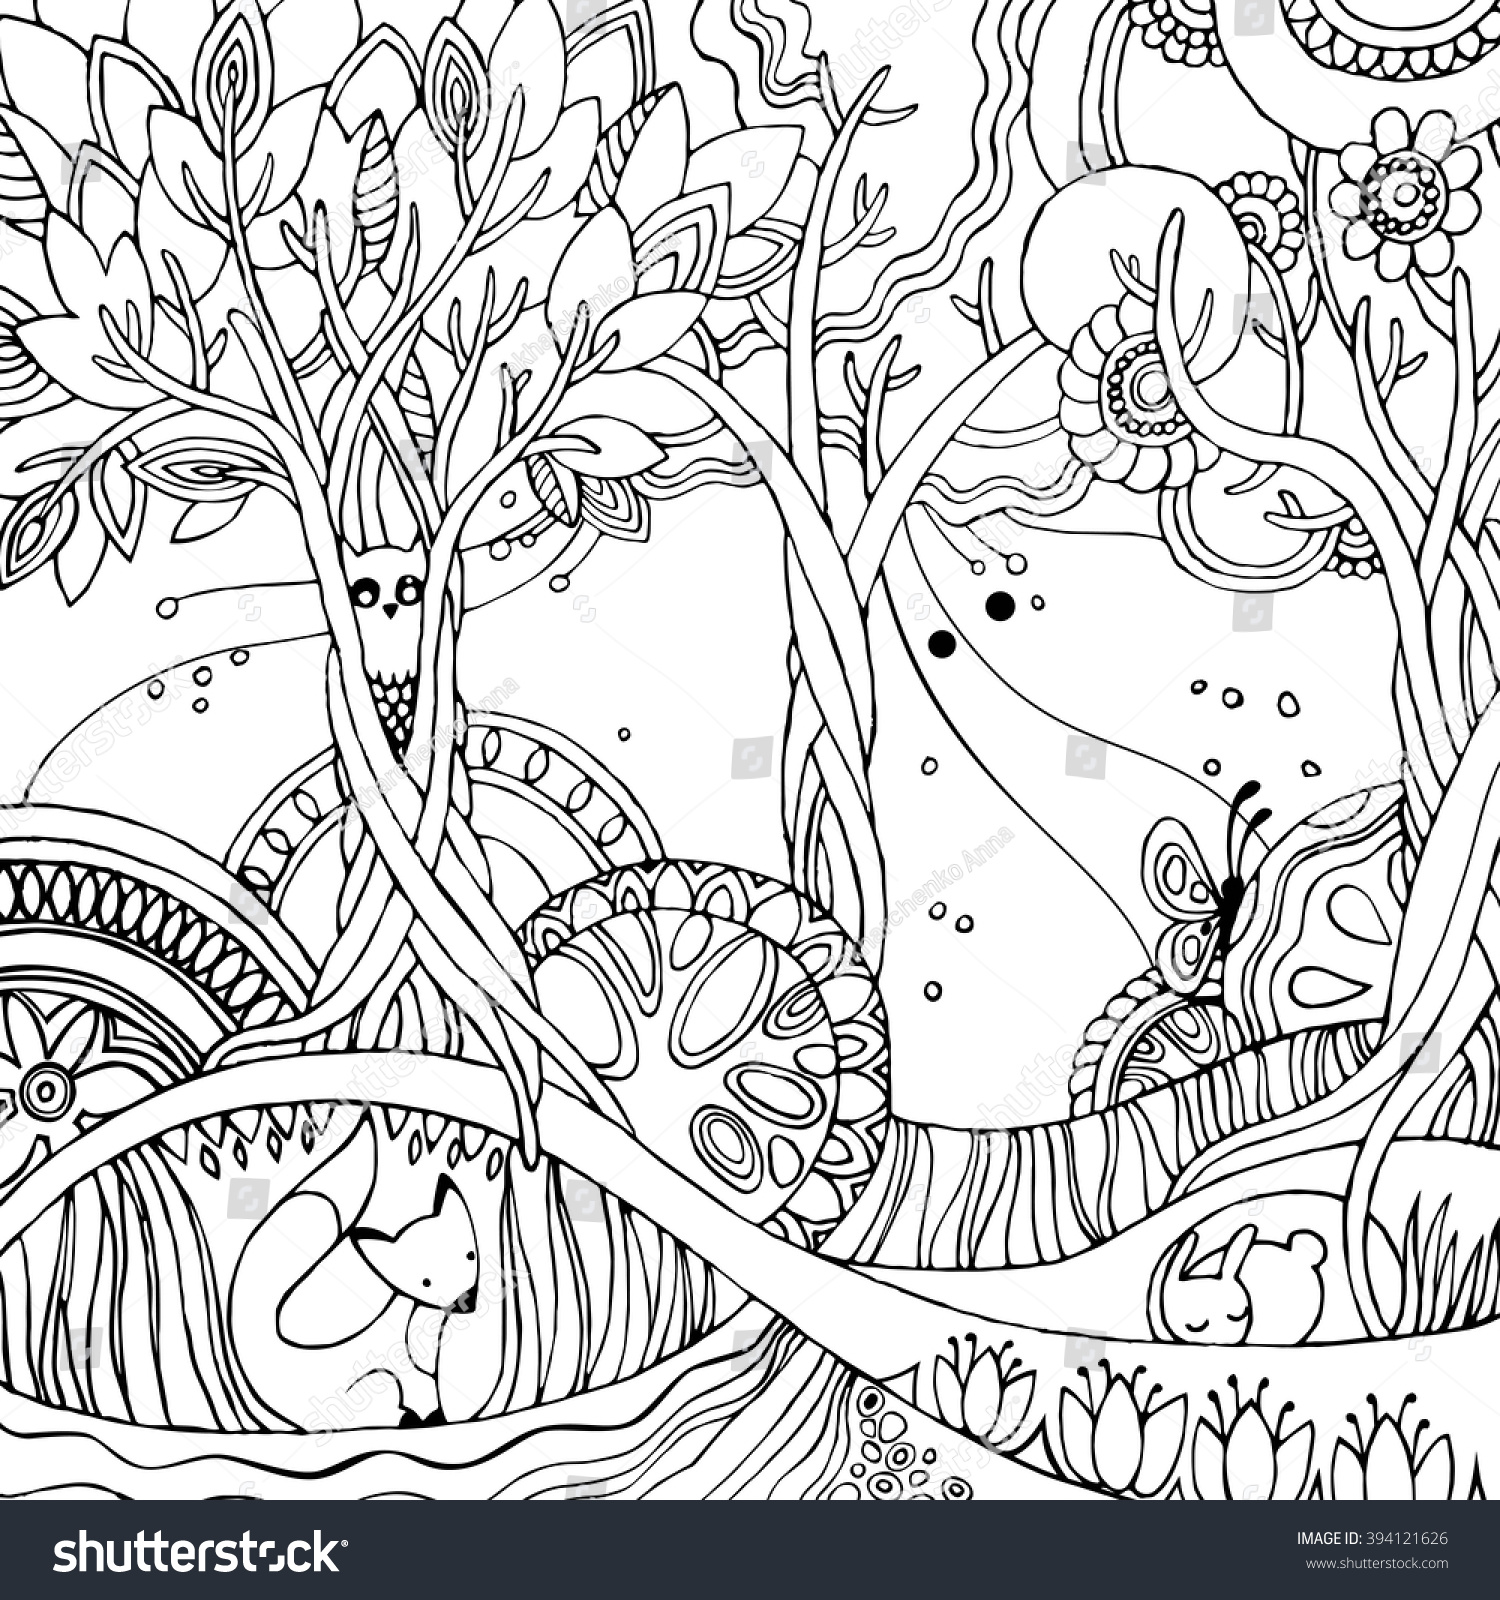 Coloring pages trees and flowers - Adult Coloring Page With Forest Fox Owl Rabbit Butterfly Trees